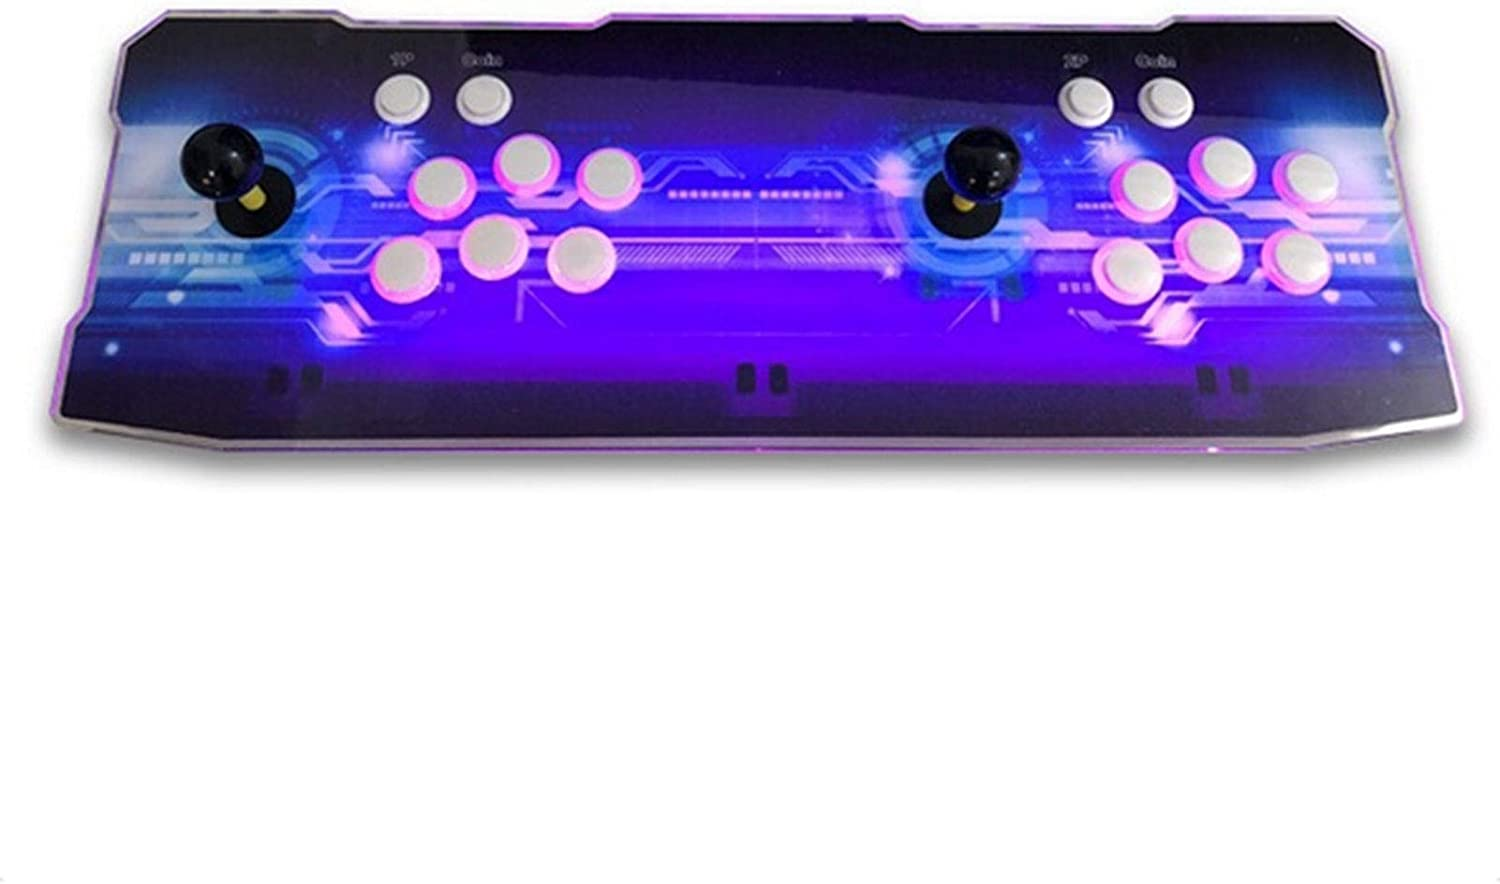 Wsaman 1388 Max 76% OFF Games HD Popular brand in the world 3D Home Arcade Video Game Console Ne